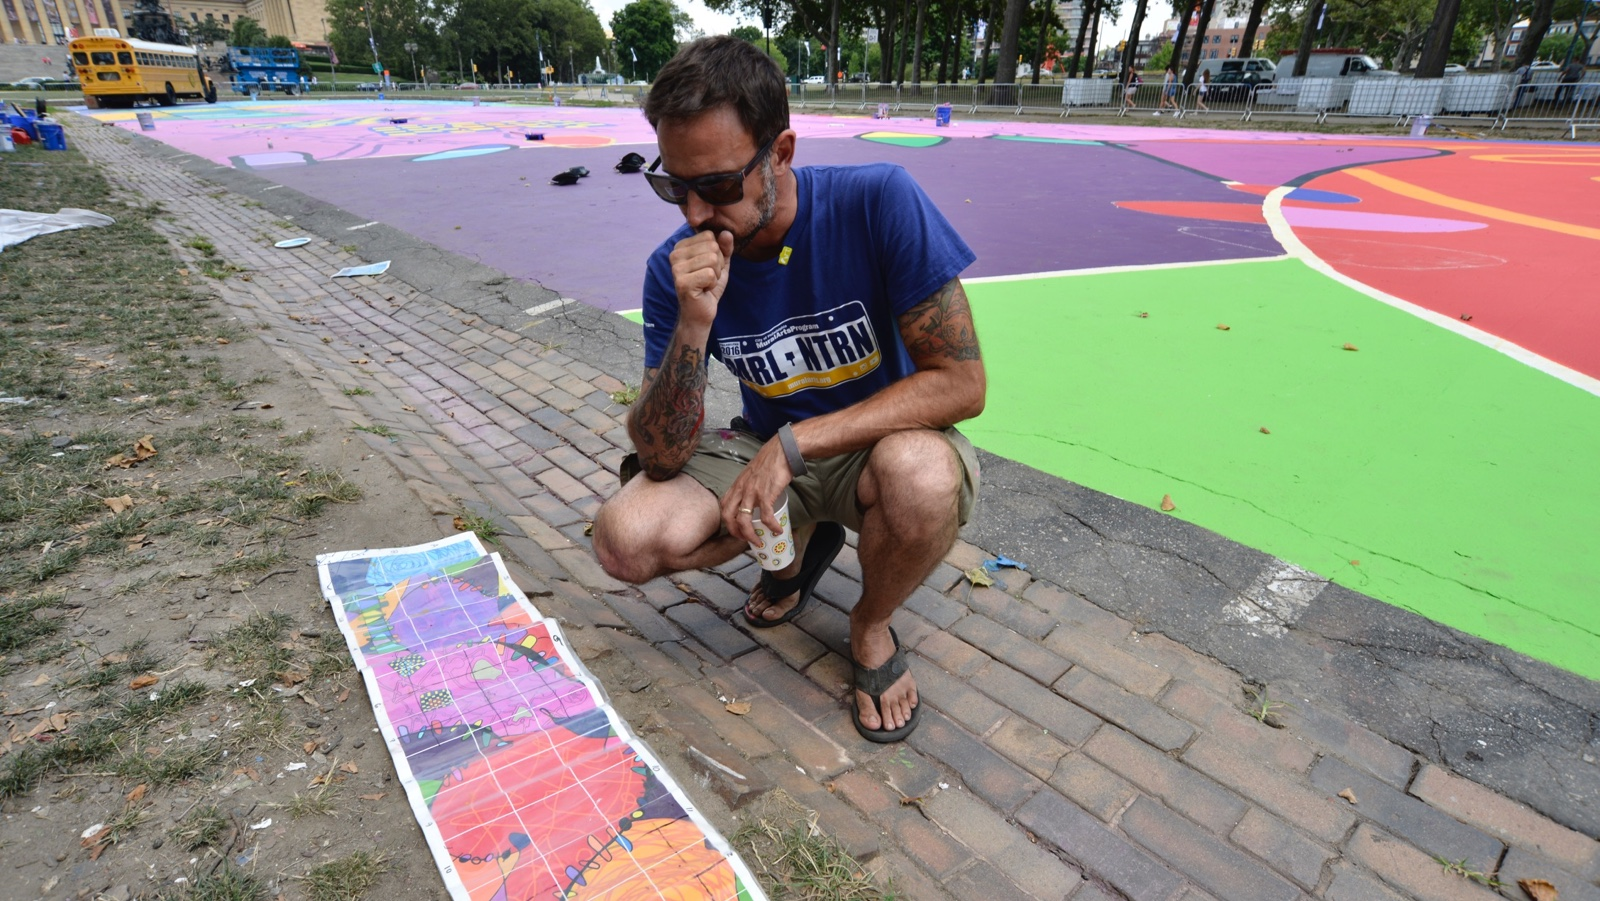 Lead muralist Brad Carney checks the design of his 25,000-square-foot mural 'Rhythm & Hues', that is currently being painted at Eakins Oval. (Bastiaan Slabbers for NewsWorks)